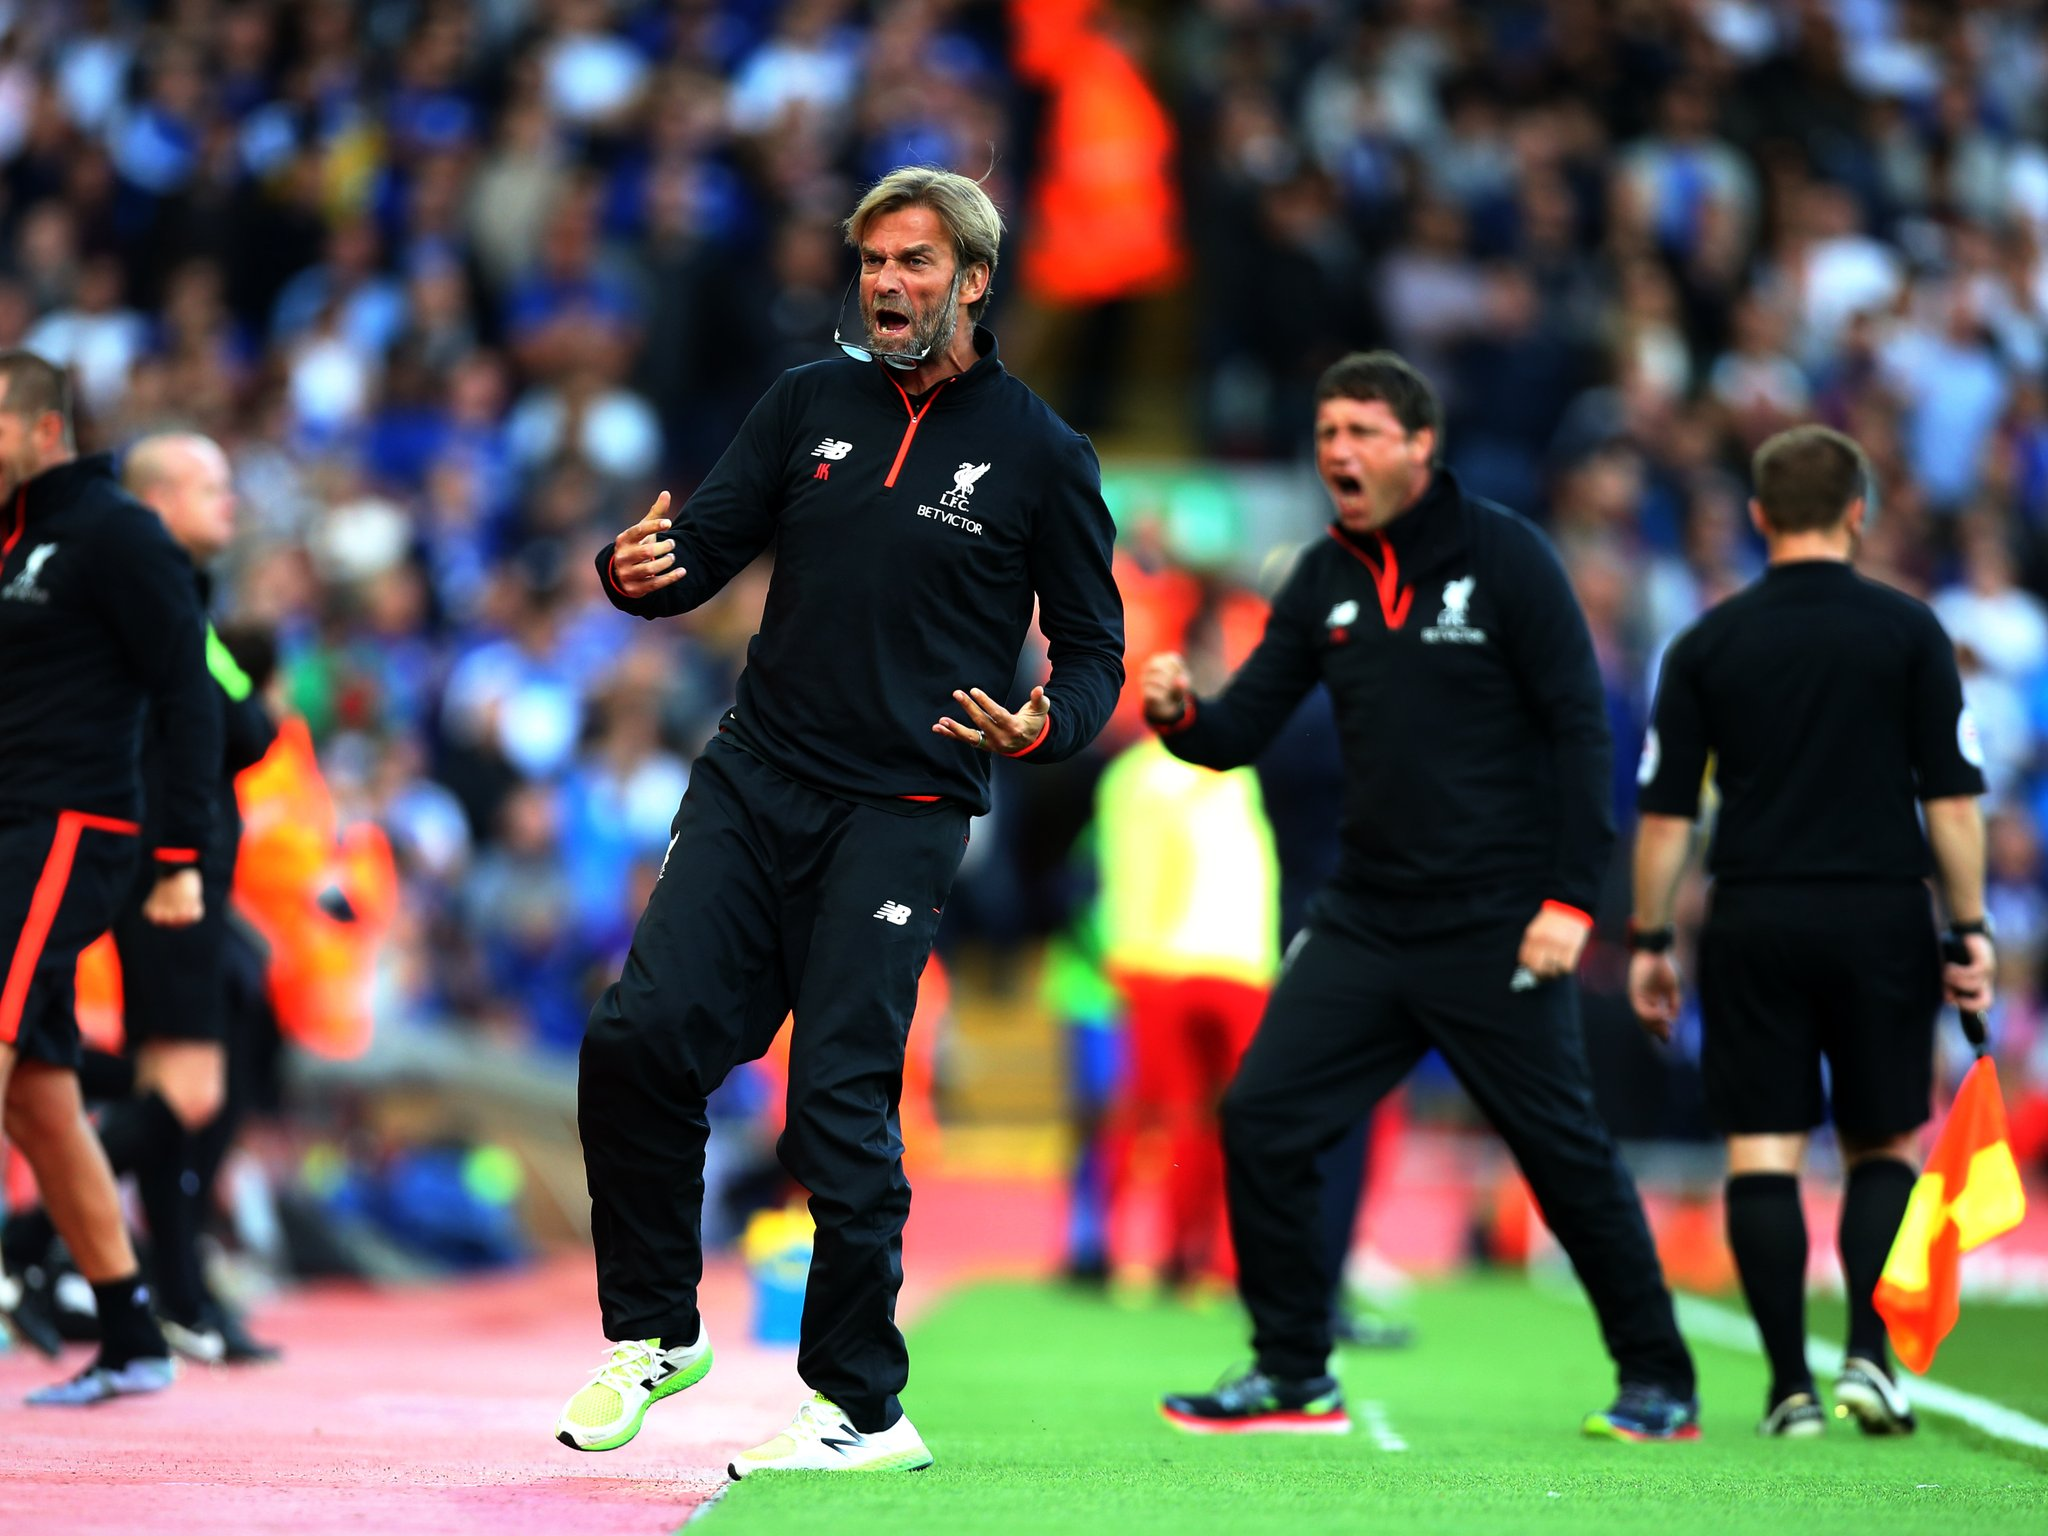 """""""Let's turn Anfield into a fortess"""": Fans react to magical performance in first home game"""